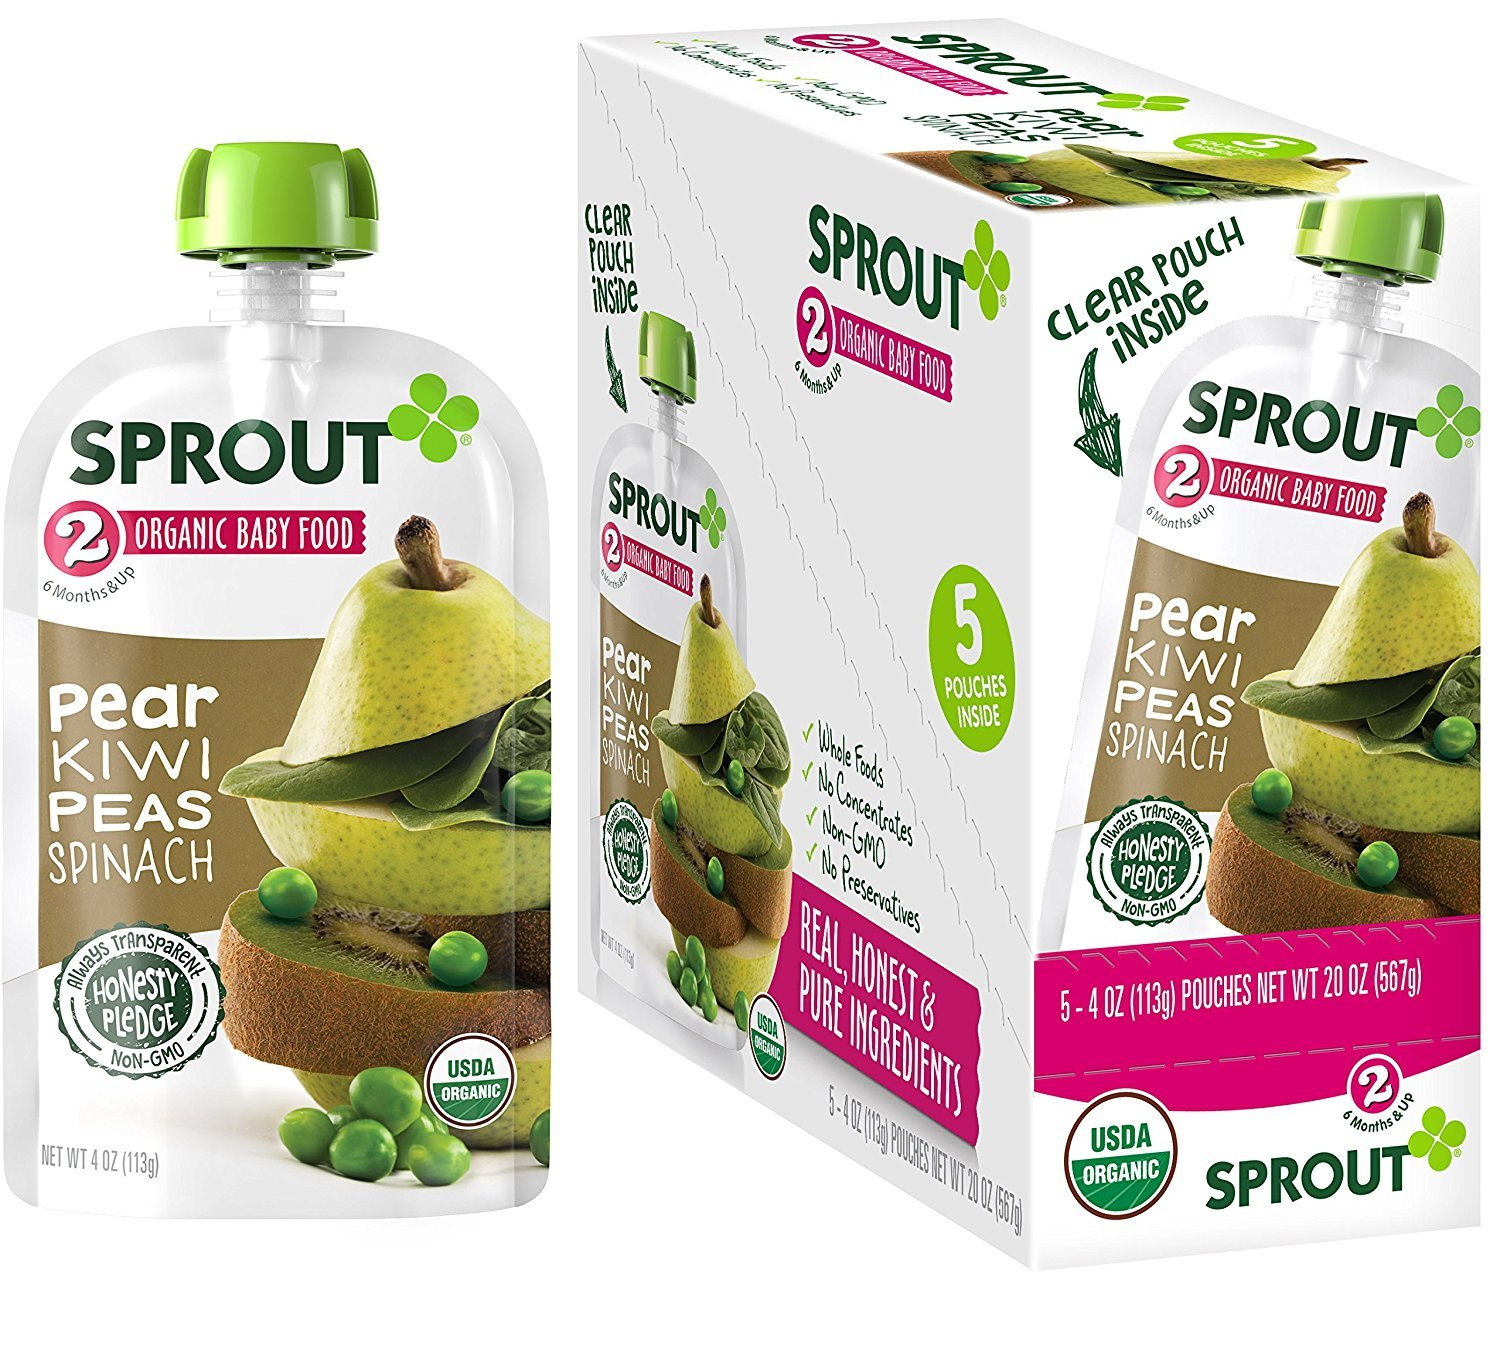 Sprout Organic Baby Food Pouches Stage 2 Sprout Baby Food, Pear Kiwi Peas Spinach, 4 Ounce (Pack of 5); USDA Organic, Non-GMO, Made with Whole Foods, No Preservatives, Nothing Artificial